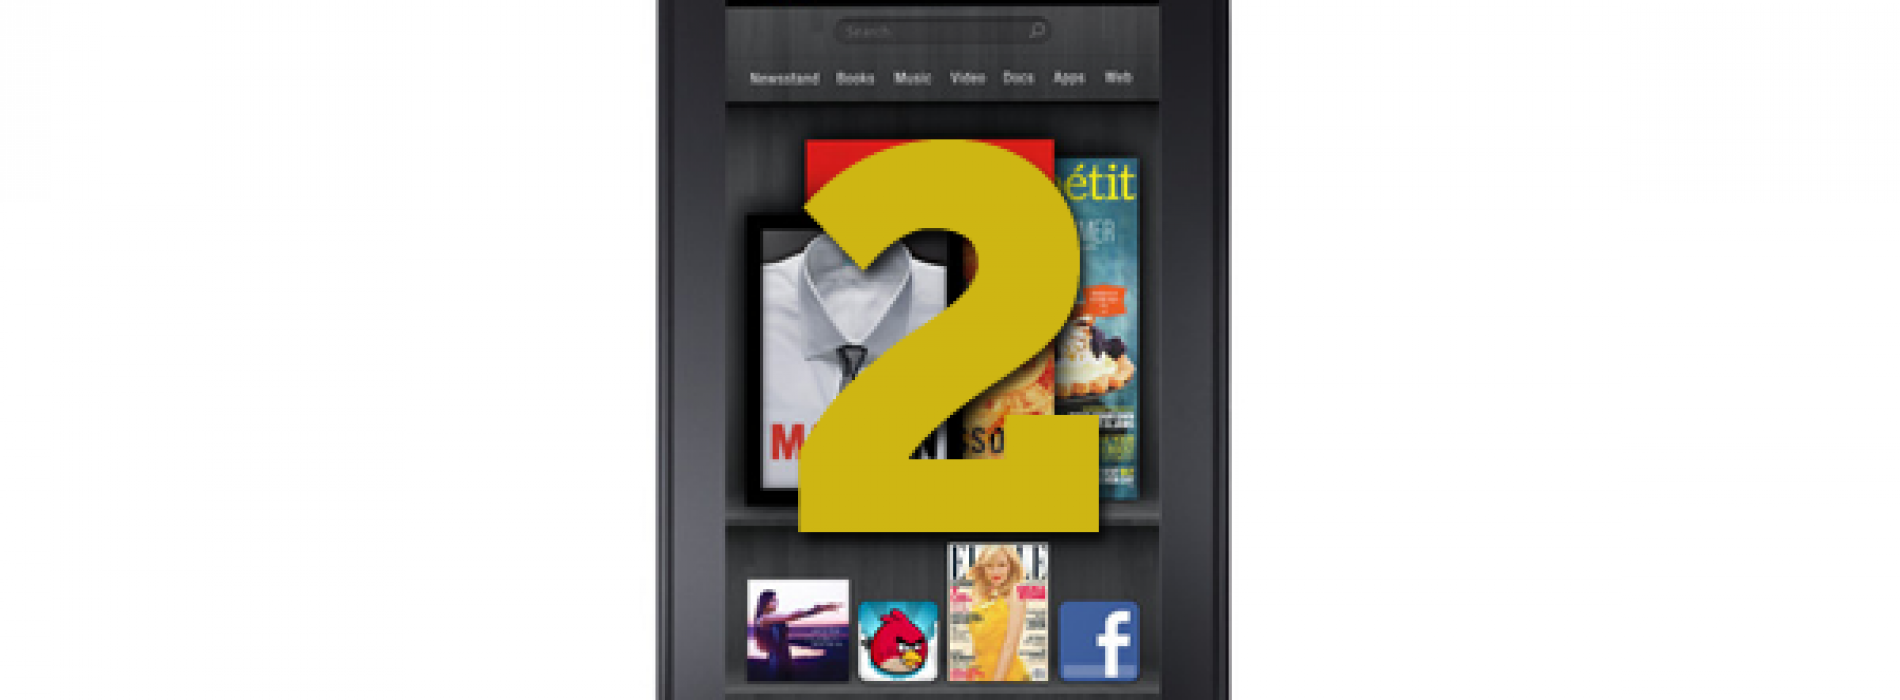 Multiple Kindle Fire successors due, including a 4G LTE model